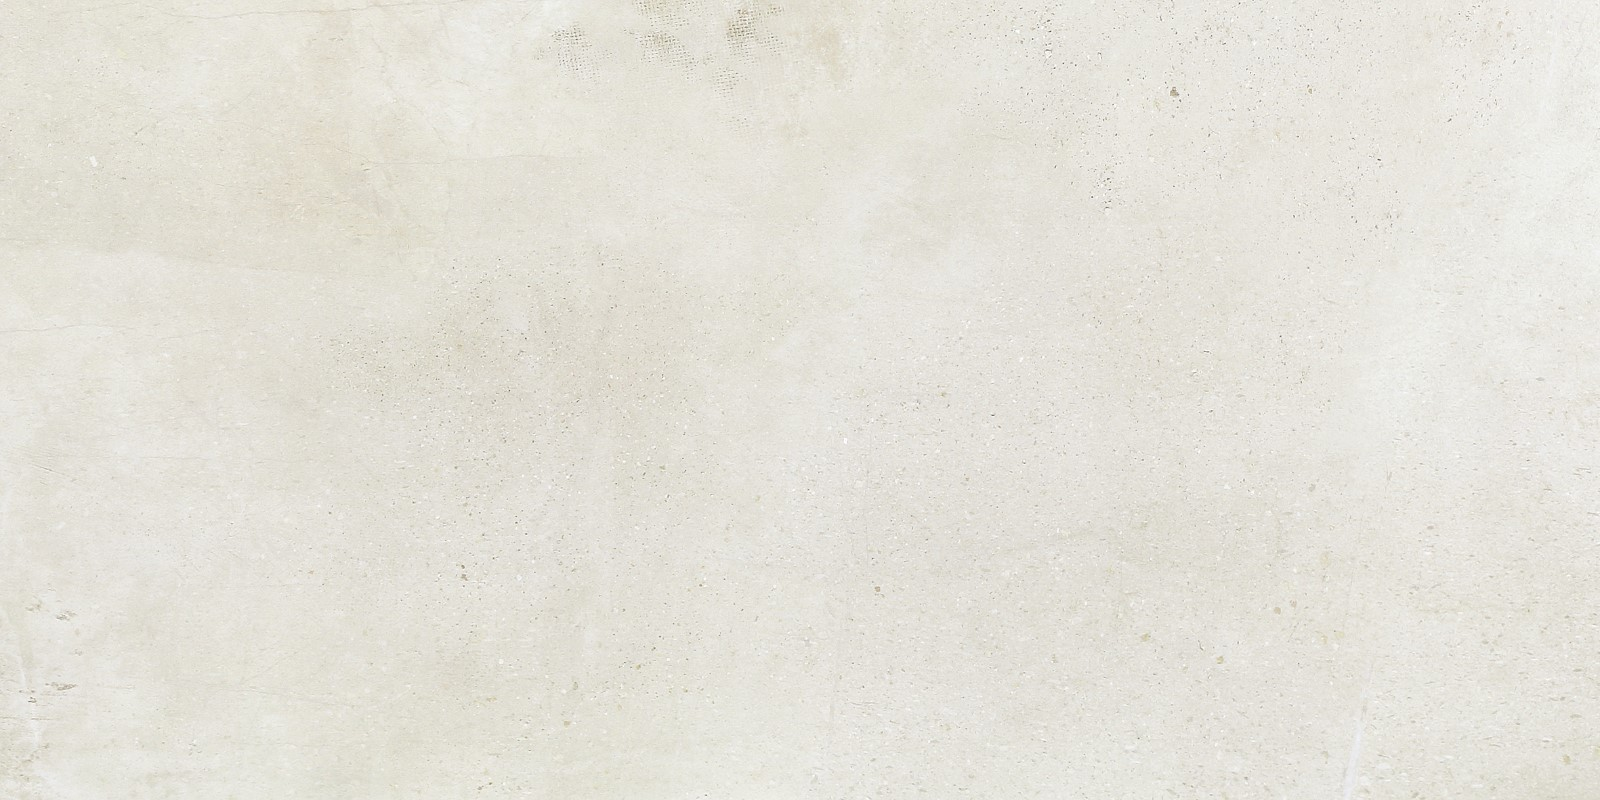 Overland ceramics skid bluestone tile flooring online for bathroom-7